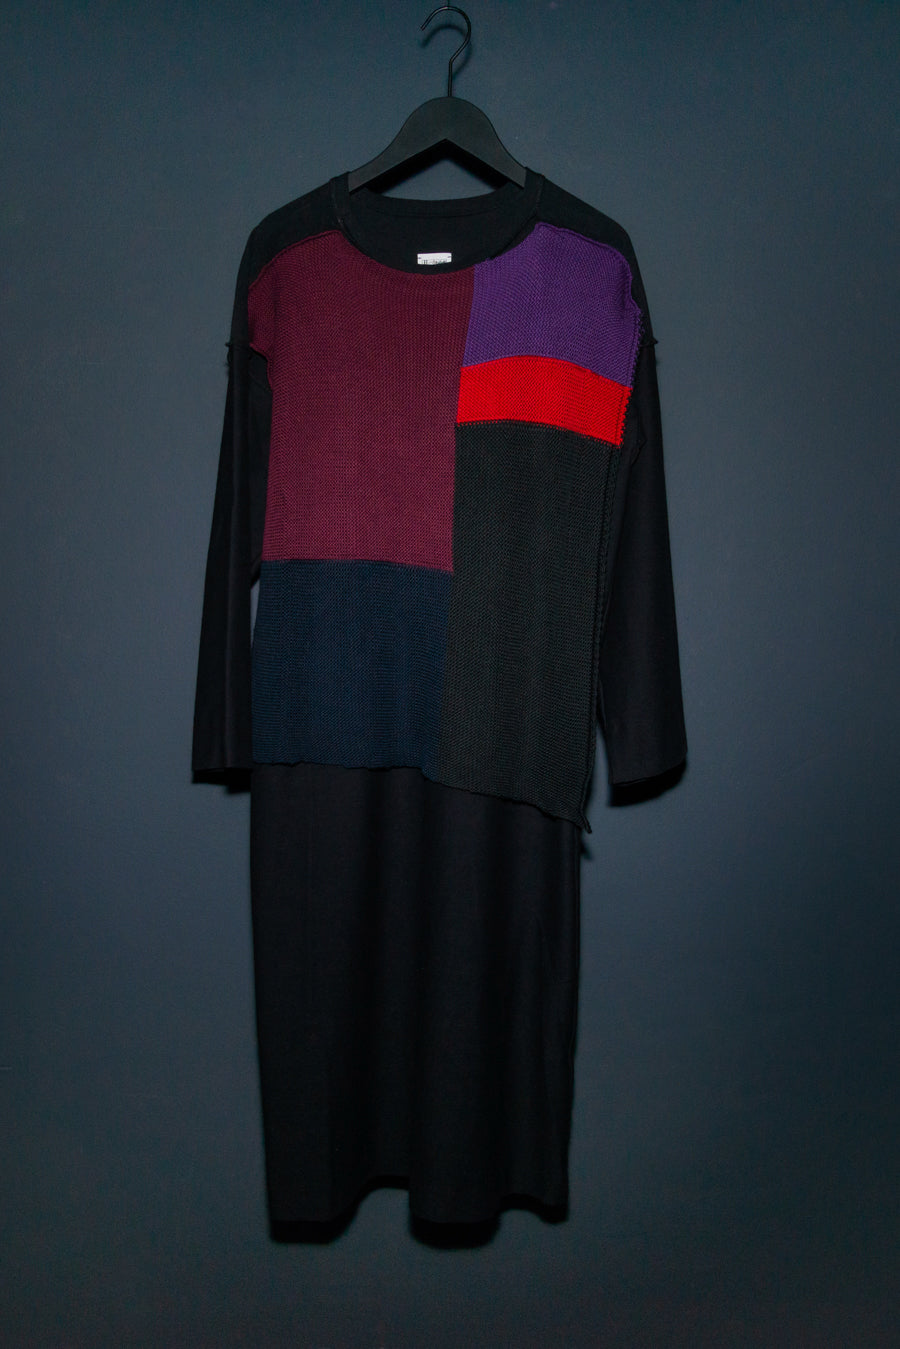 Knitted Dress von Boessert-Schorn